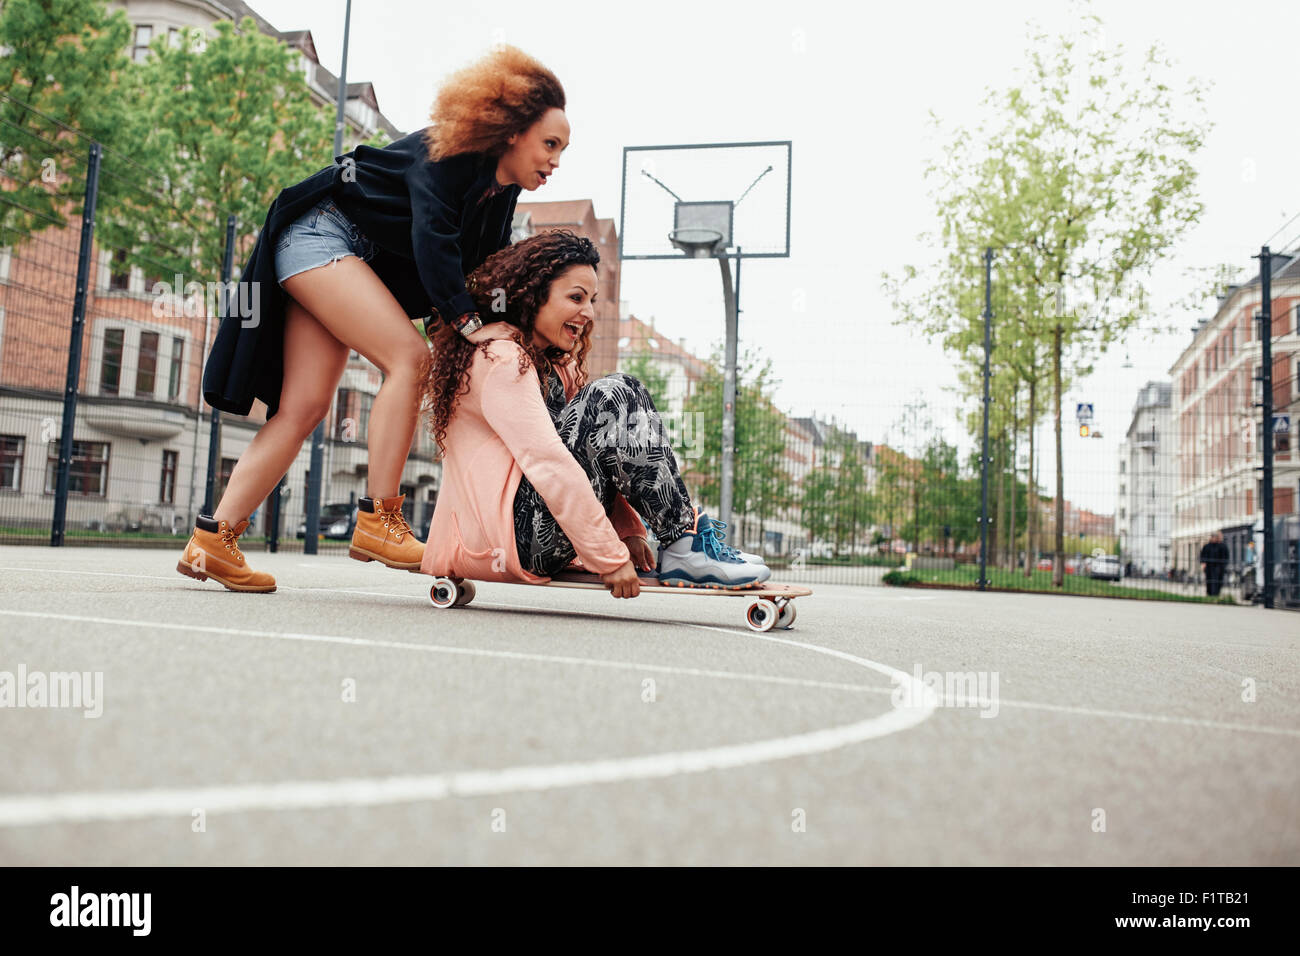 Woman pushing her friend on skateboard. Young women having fun together outdoors. - Stock Image